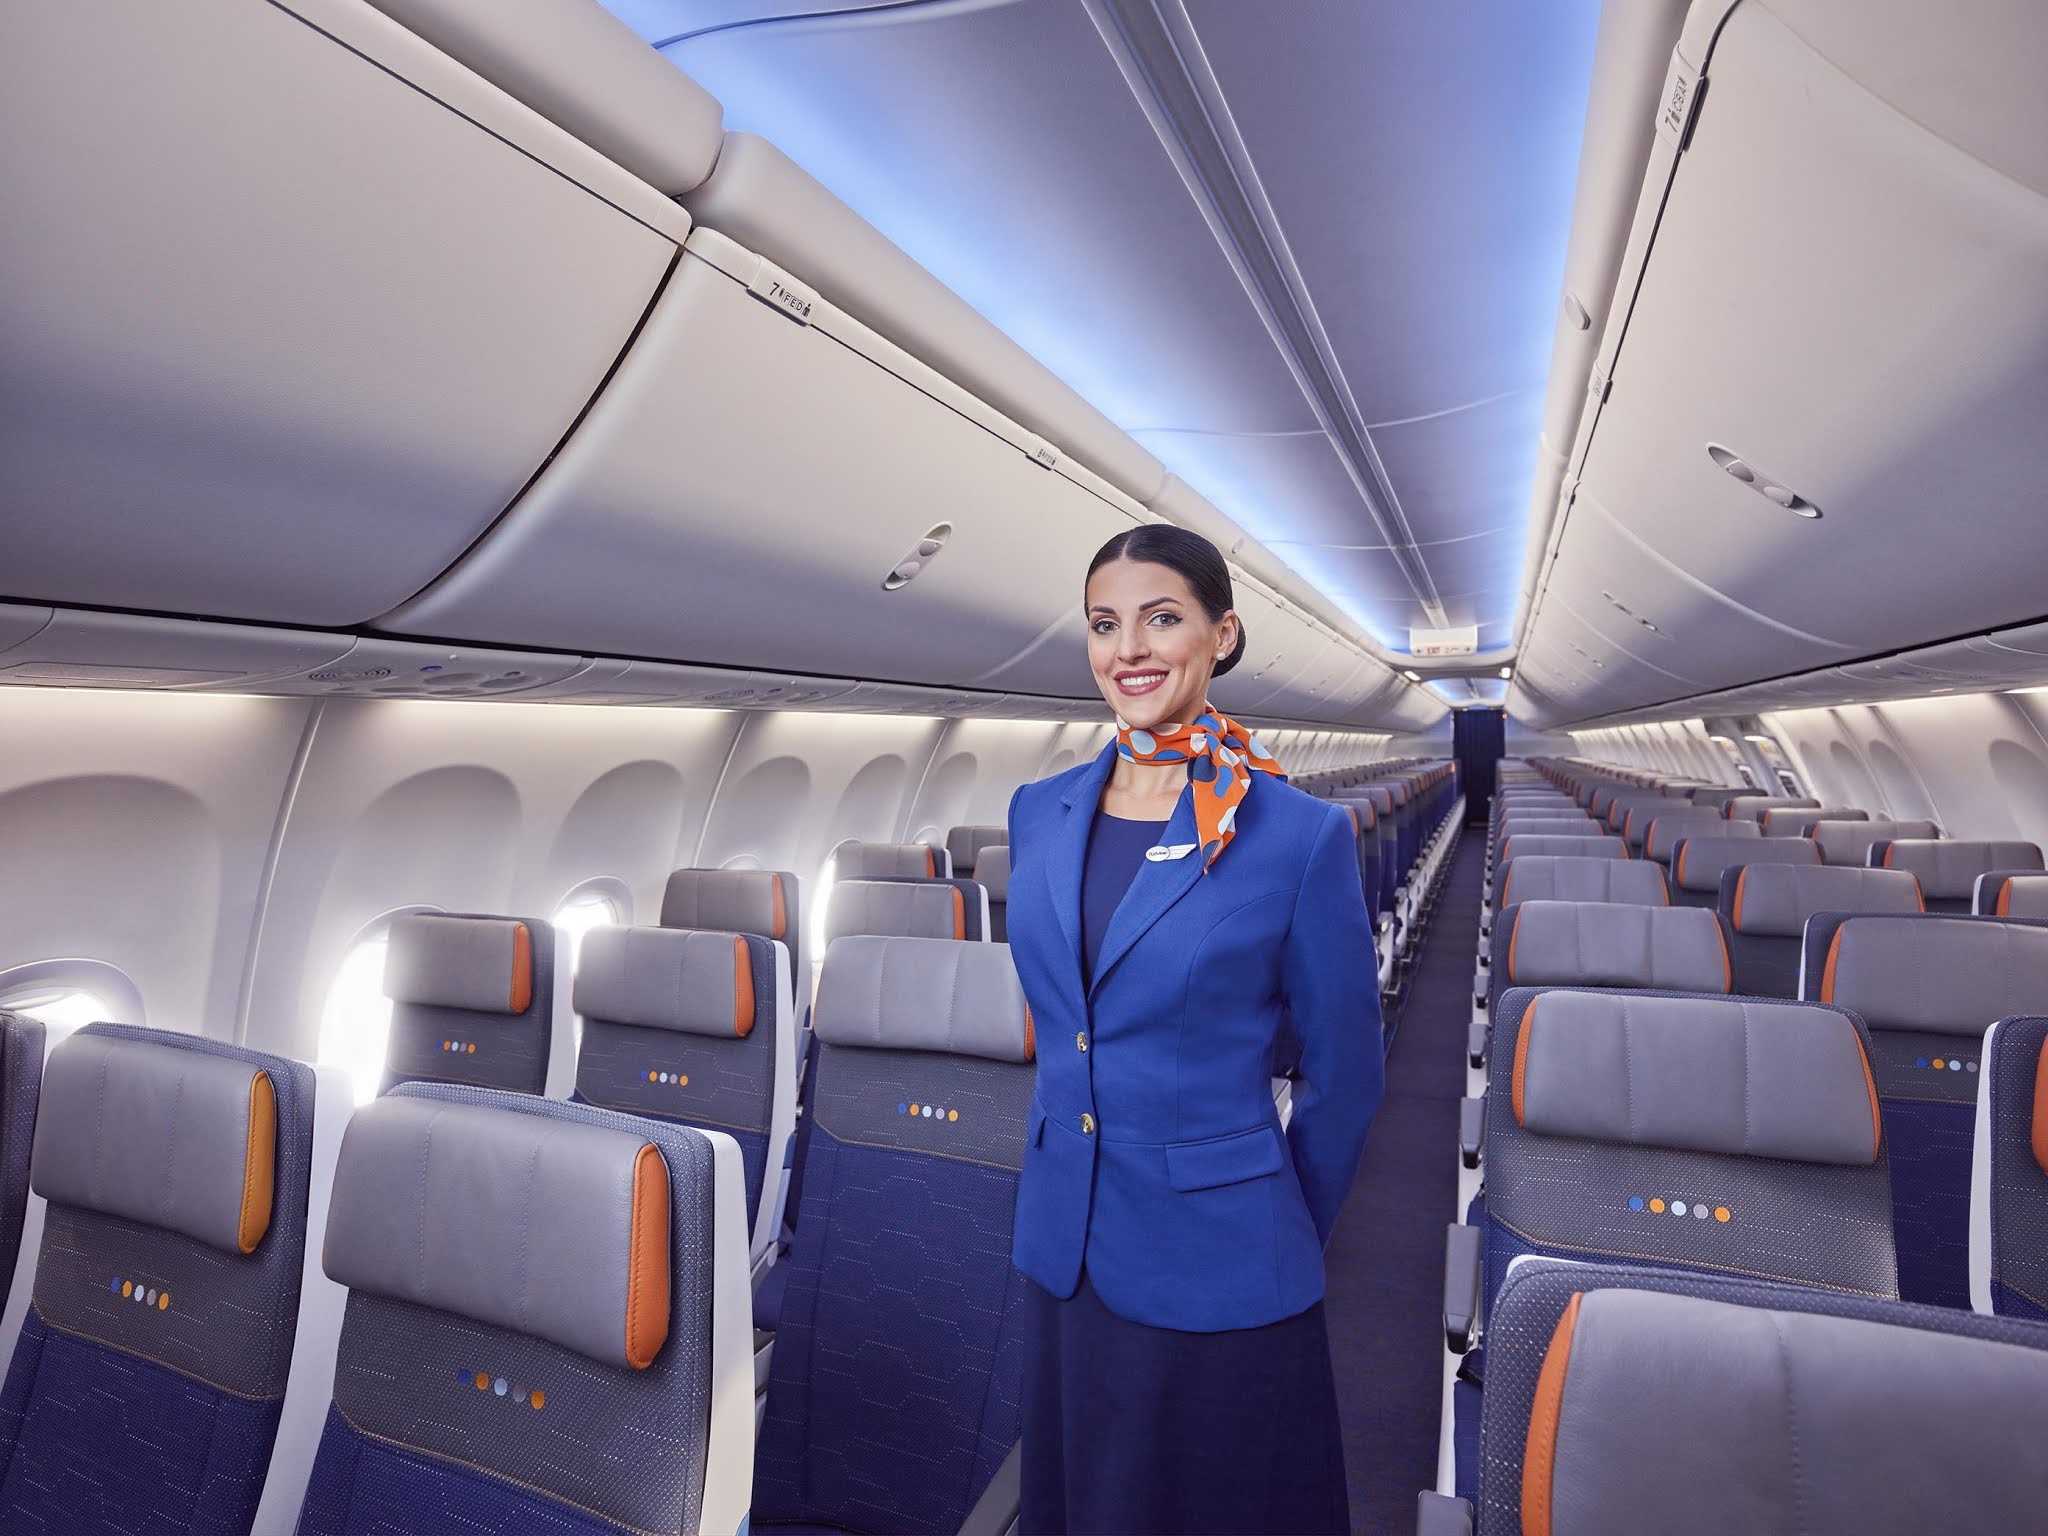 Flydubai passenger experience redesigned to enable travel in a safe environment